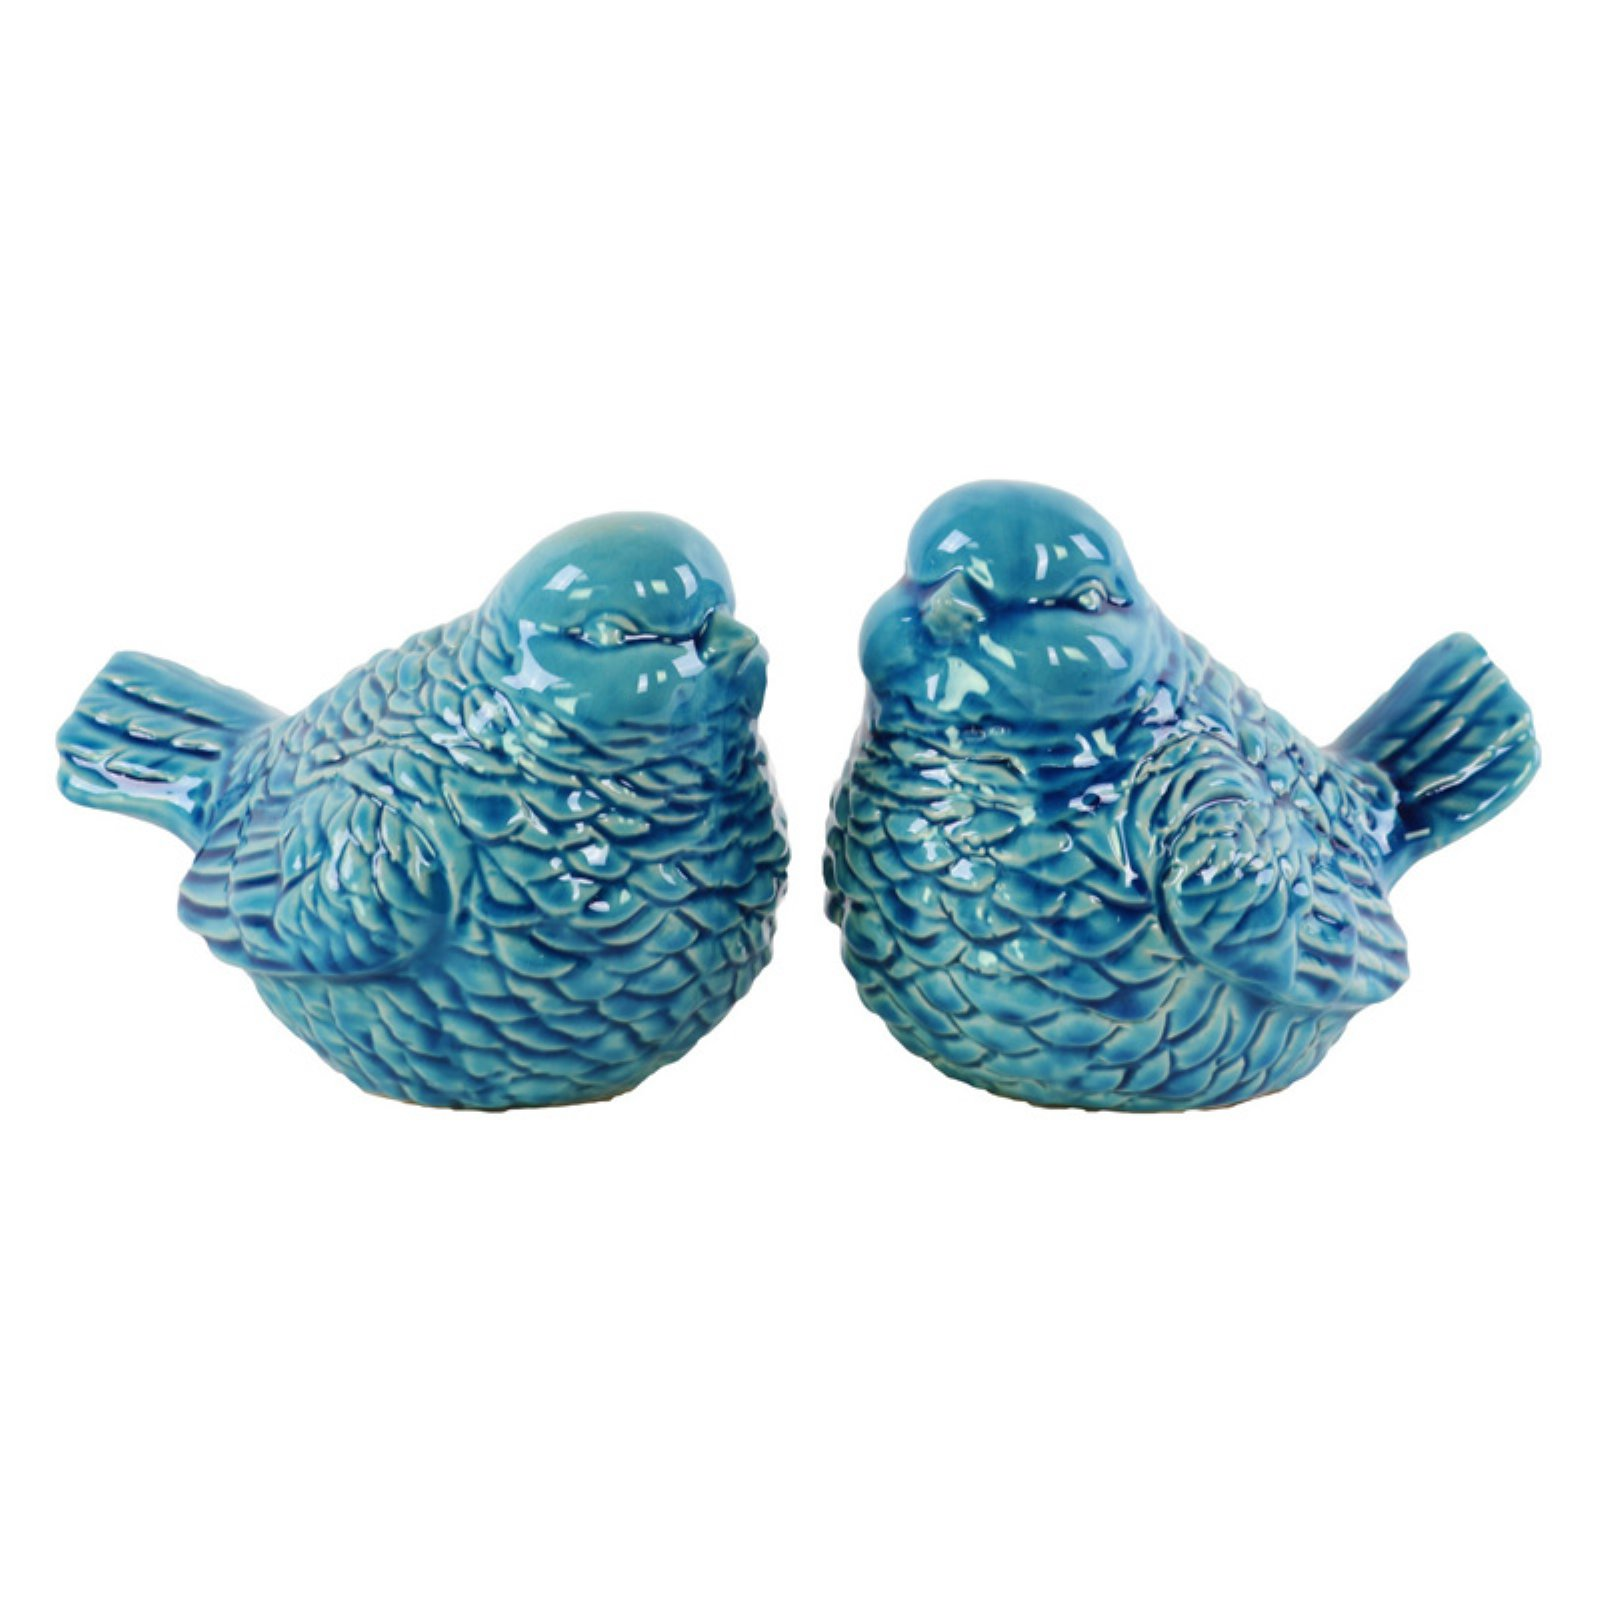 Urban Trends Collection: Ceramic Bird Figurine, Gloss Finish, Turquoise